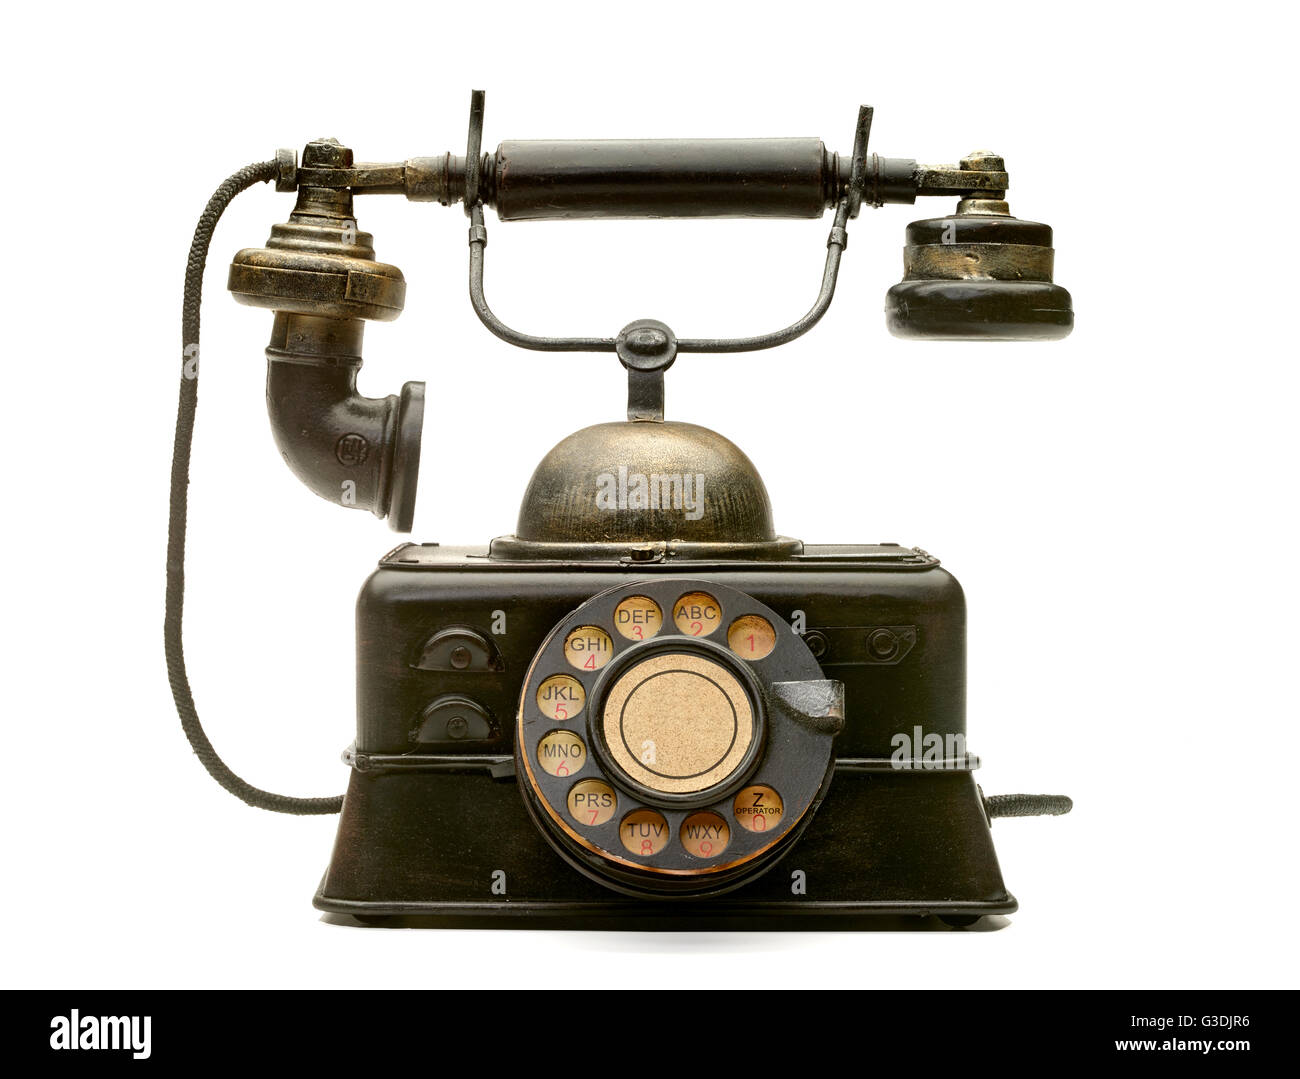 hight resolution of old vintage antique telephone